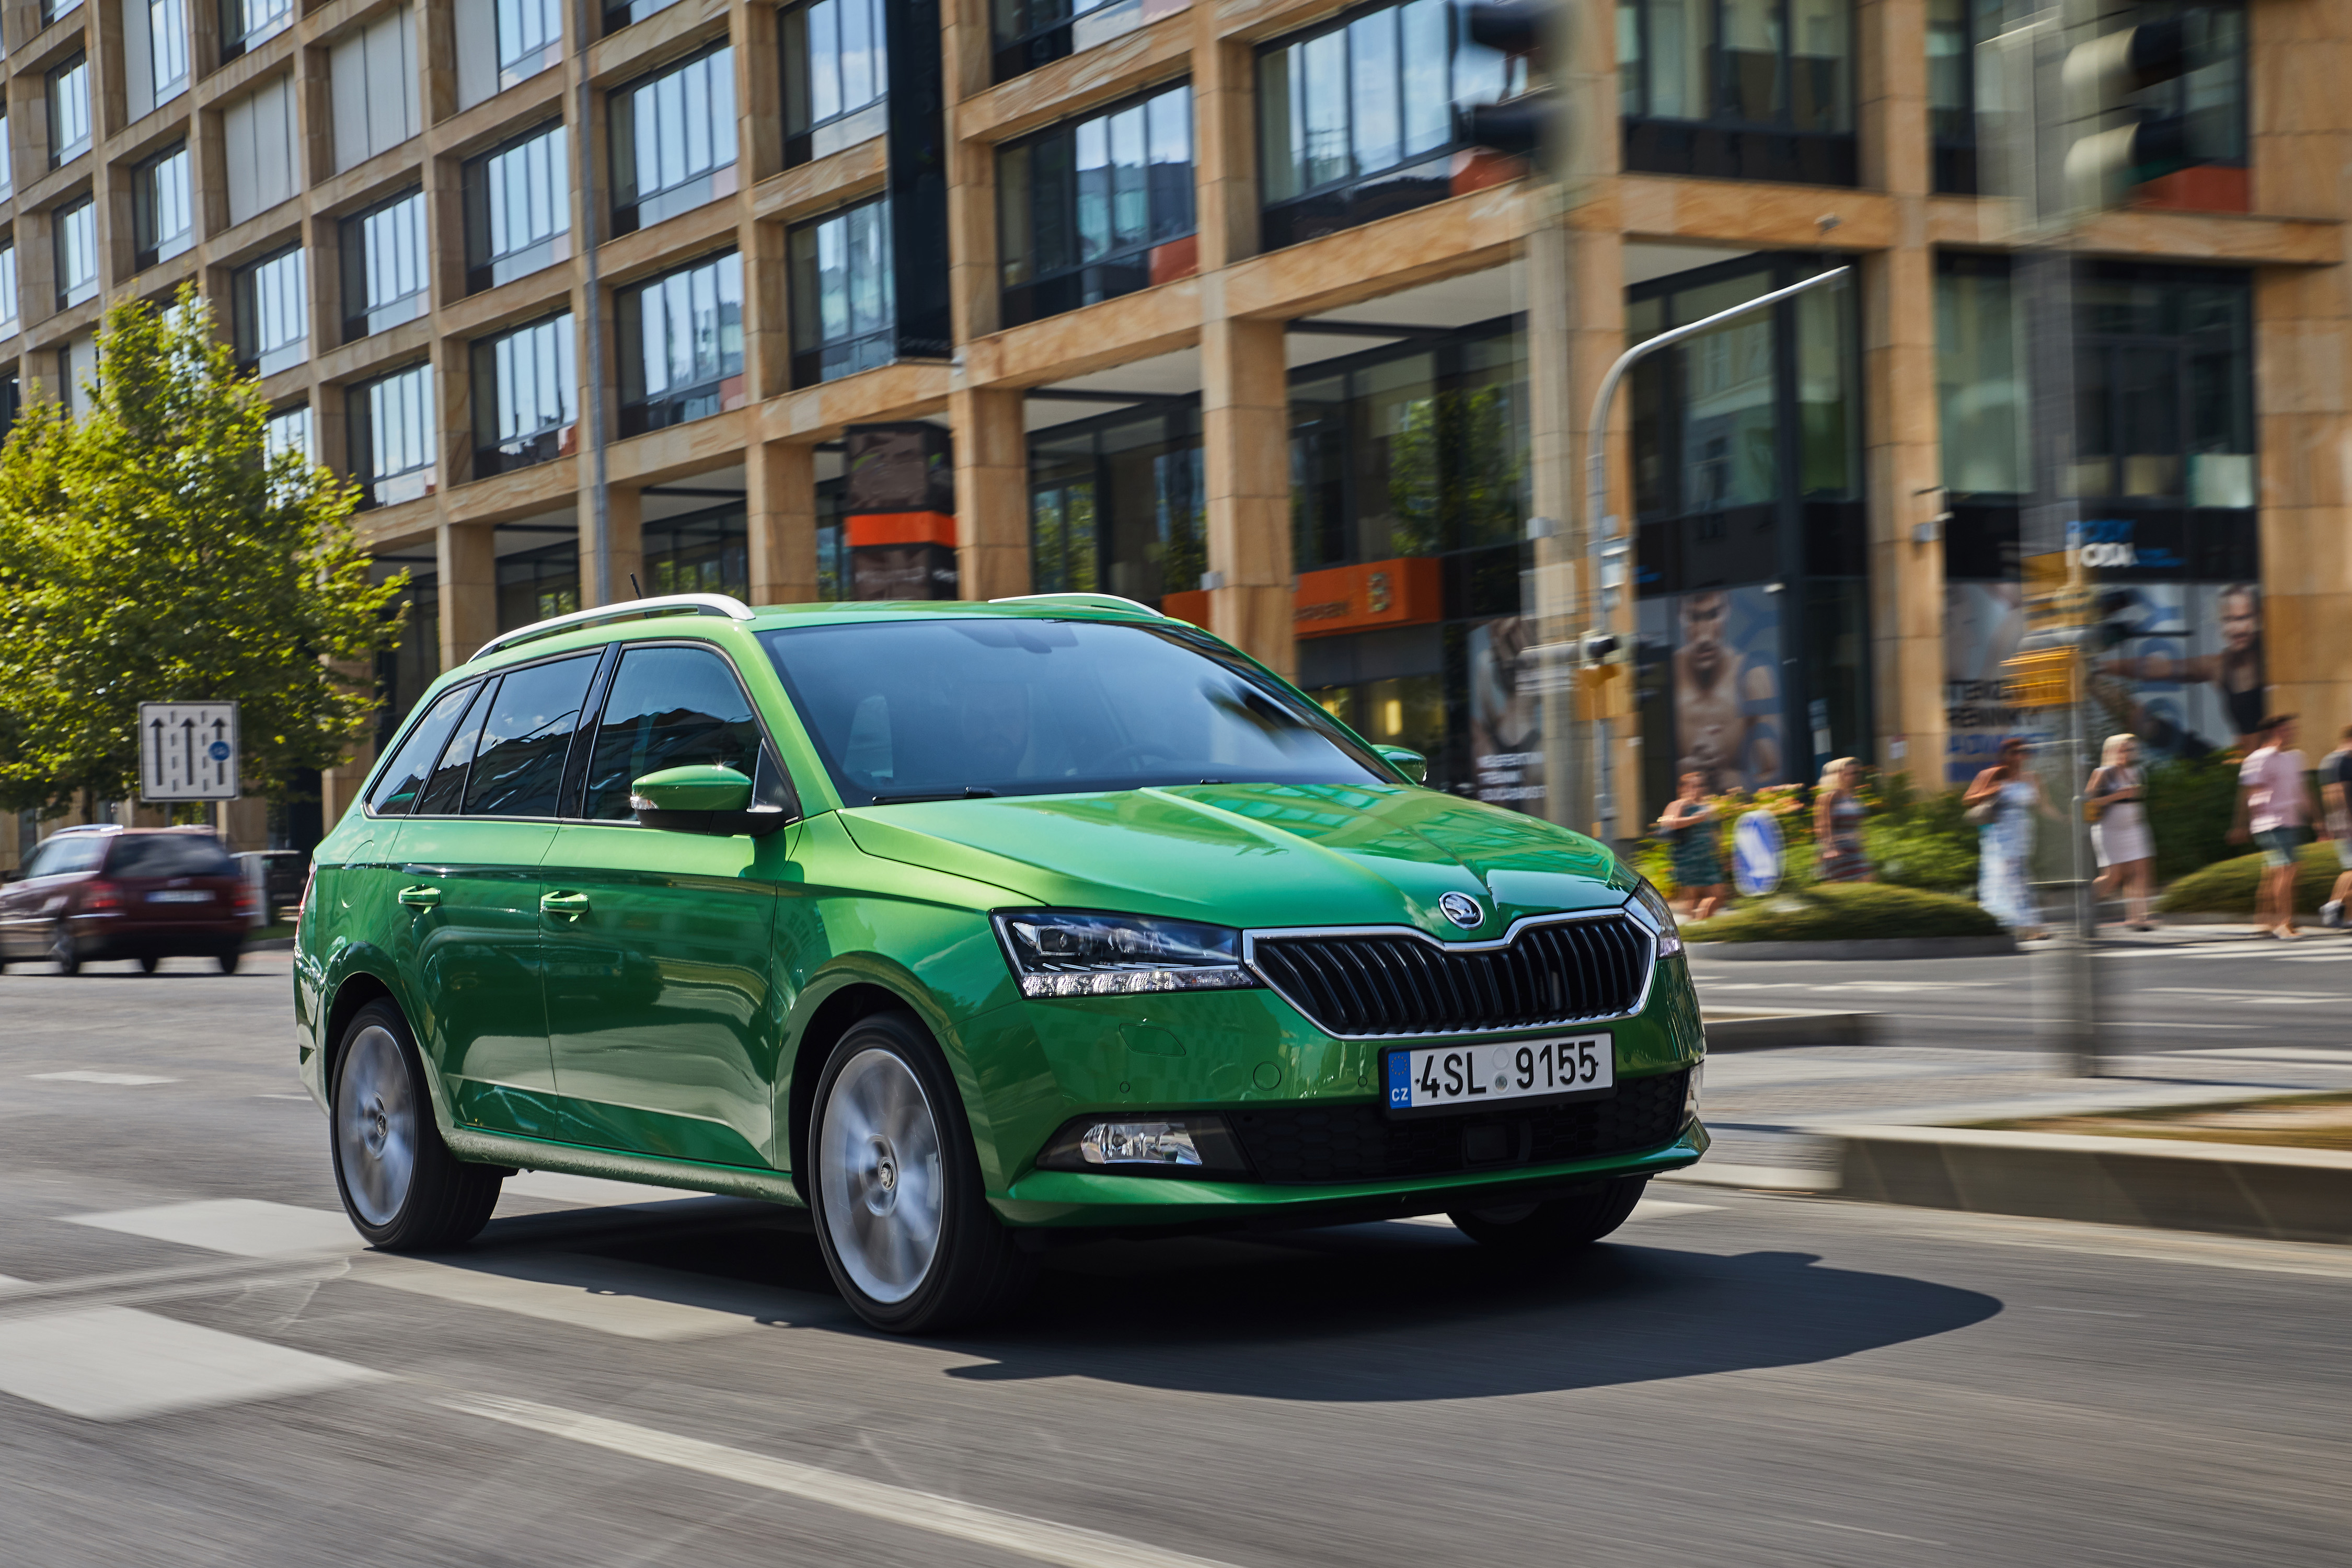 20 years of the SKODA FABIA COMBI: A real success story - Image 1